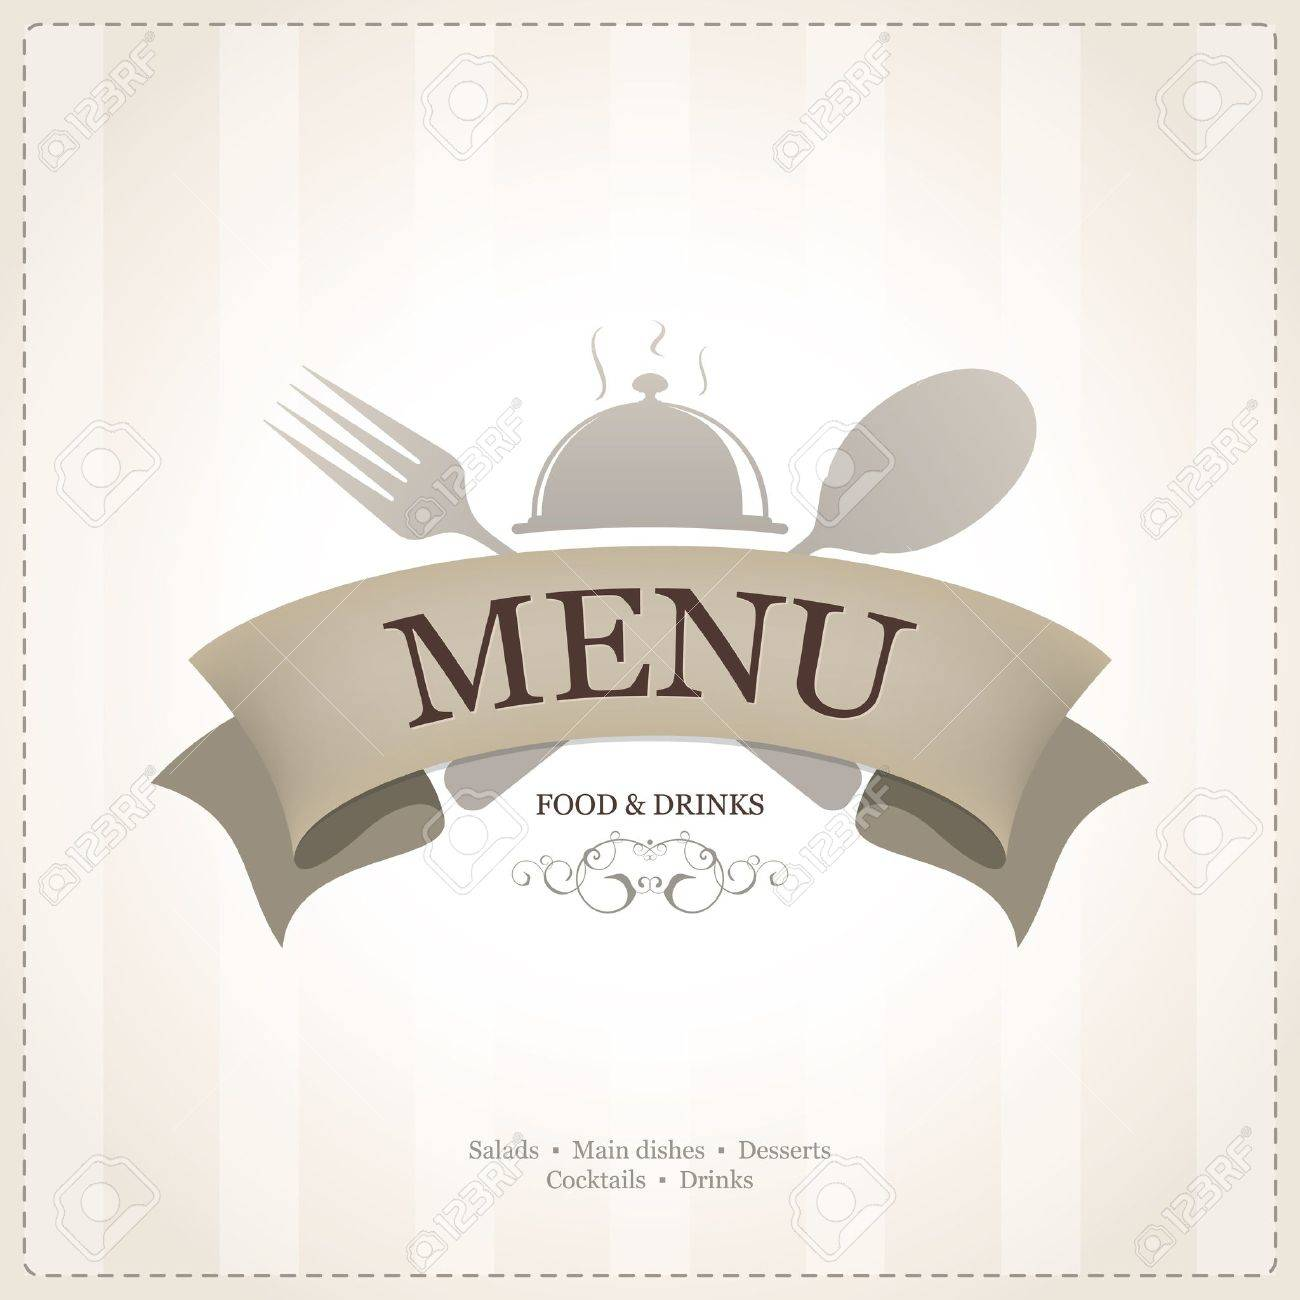 Restaurant menu design Stock Vector - 14411435